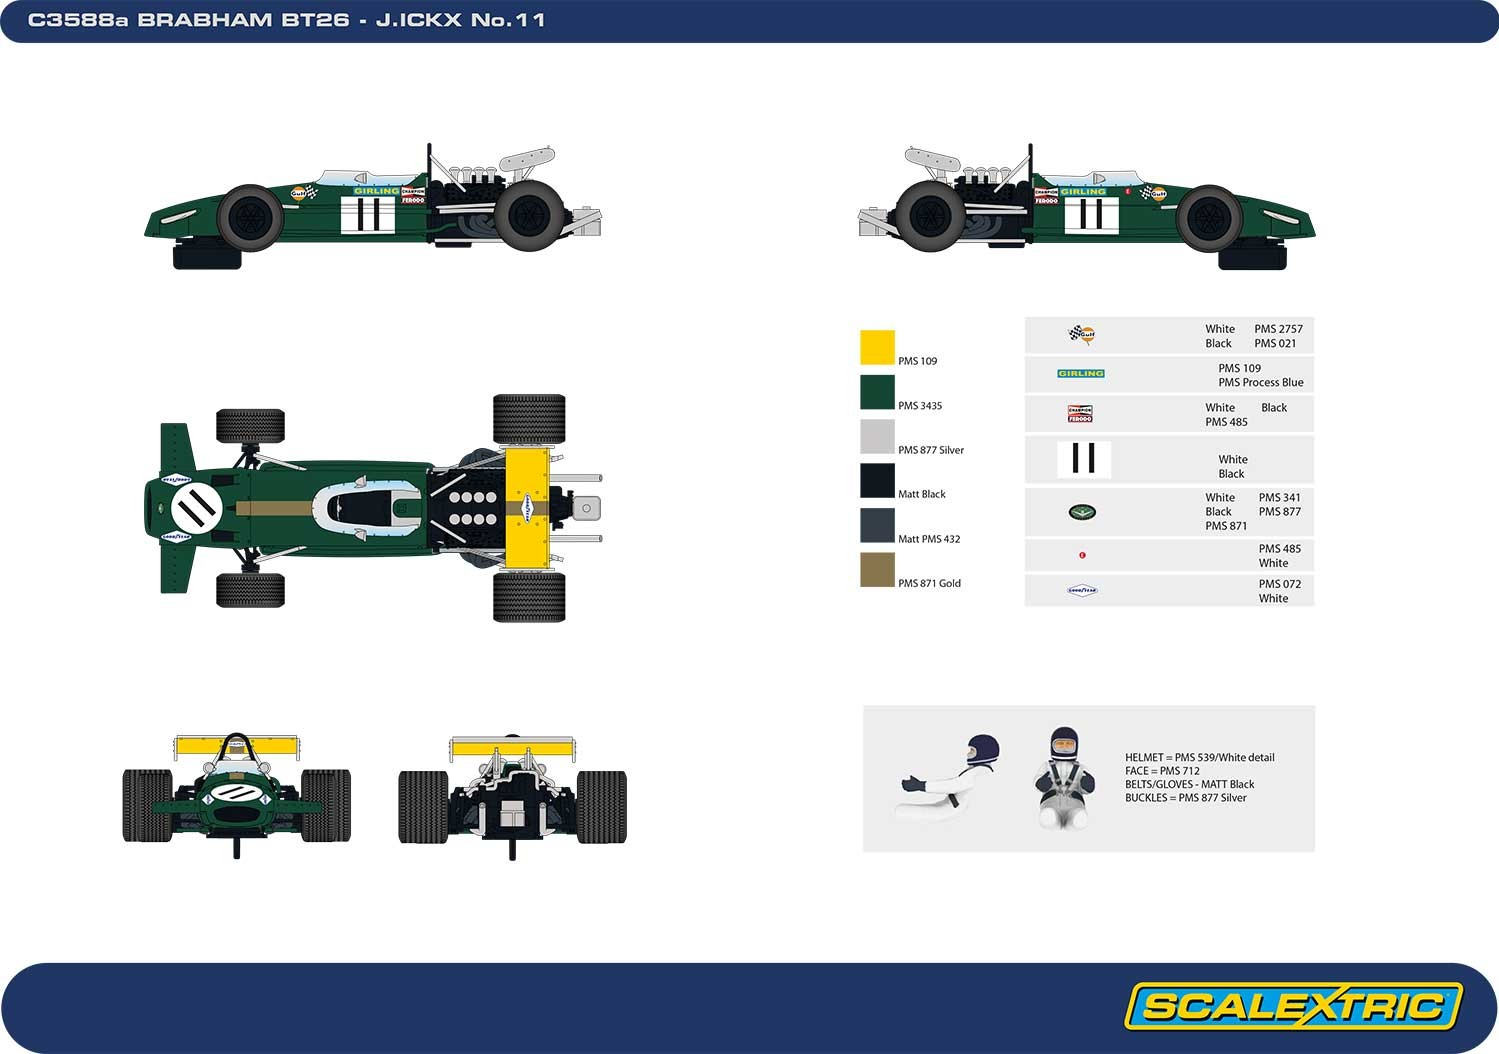 Scalextric - Legends Brabham BT26A-3 (C3588A) Zeichnung